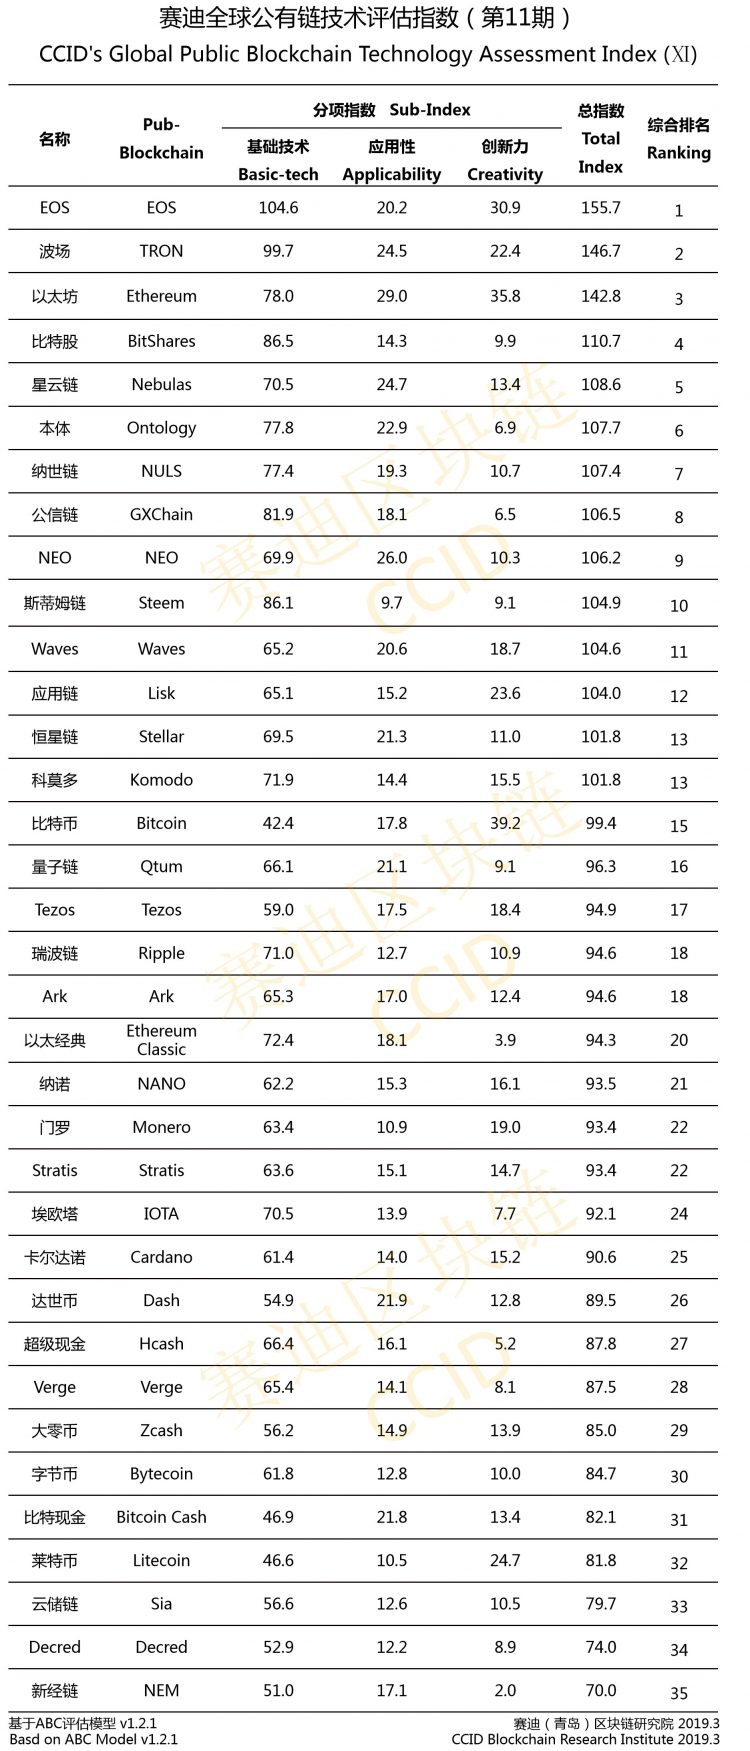 China crypto ranking